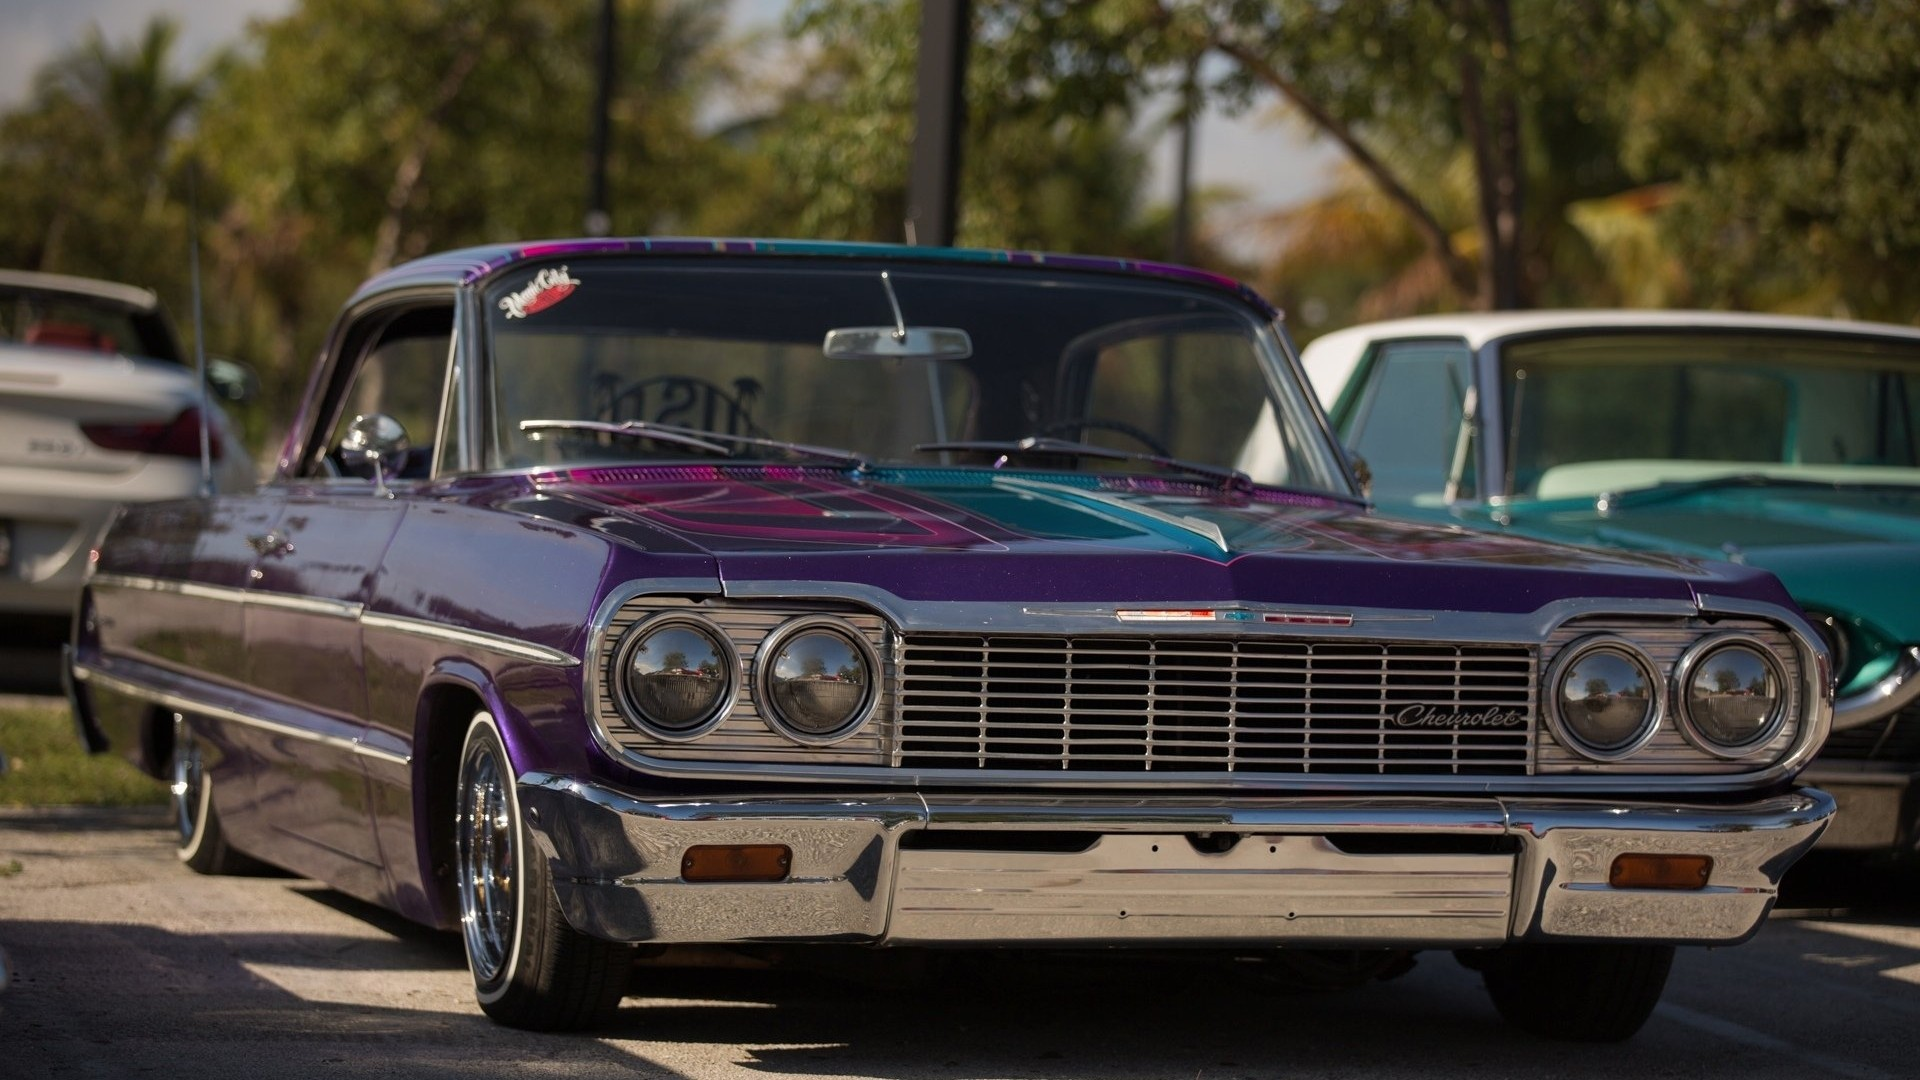 Lowrider Free Wallpaper and Background